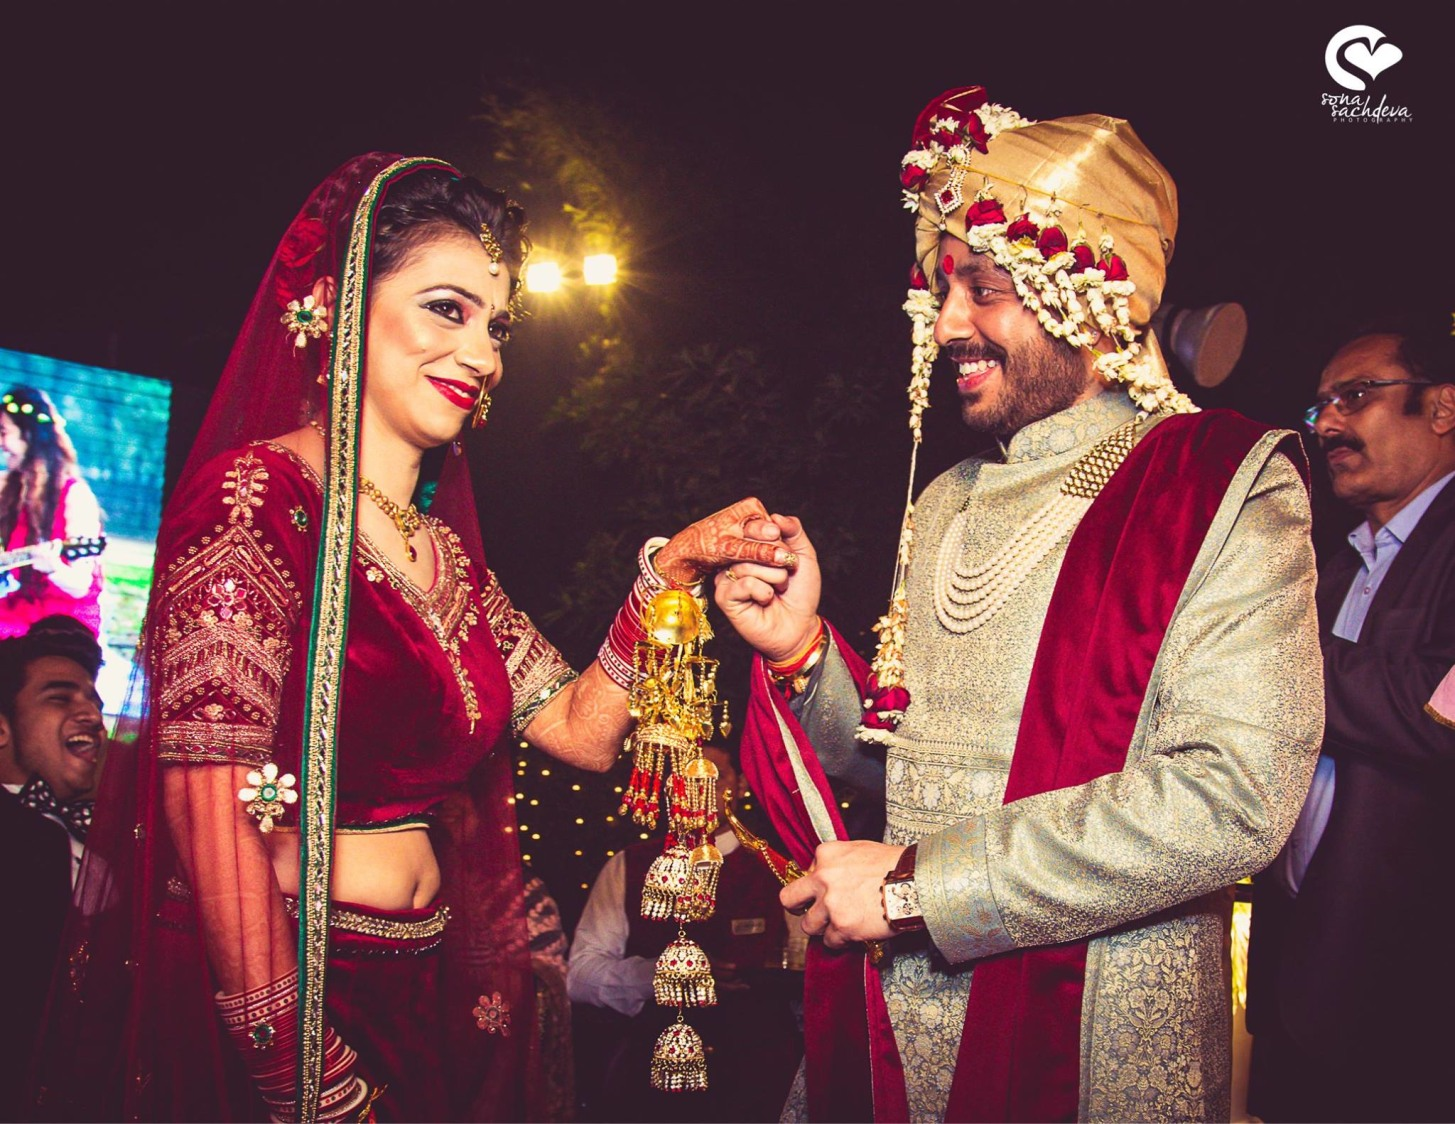 Made for each other by Sona Sachdeva Photography Wedding-photography | Weddings Photos & Ideas